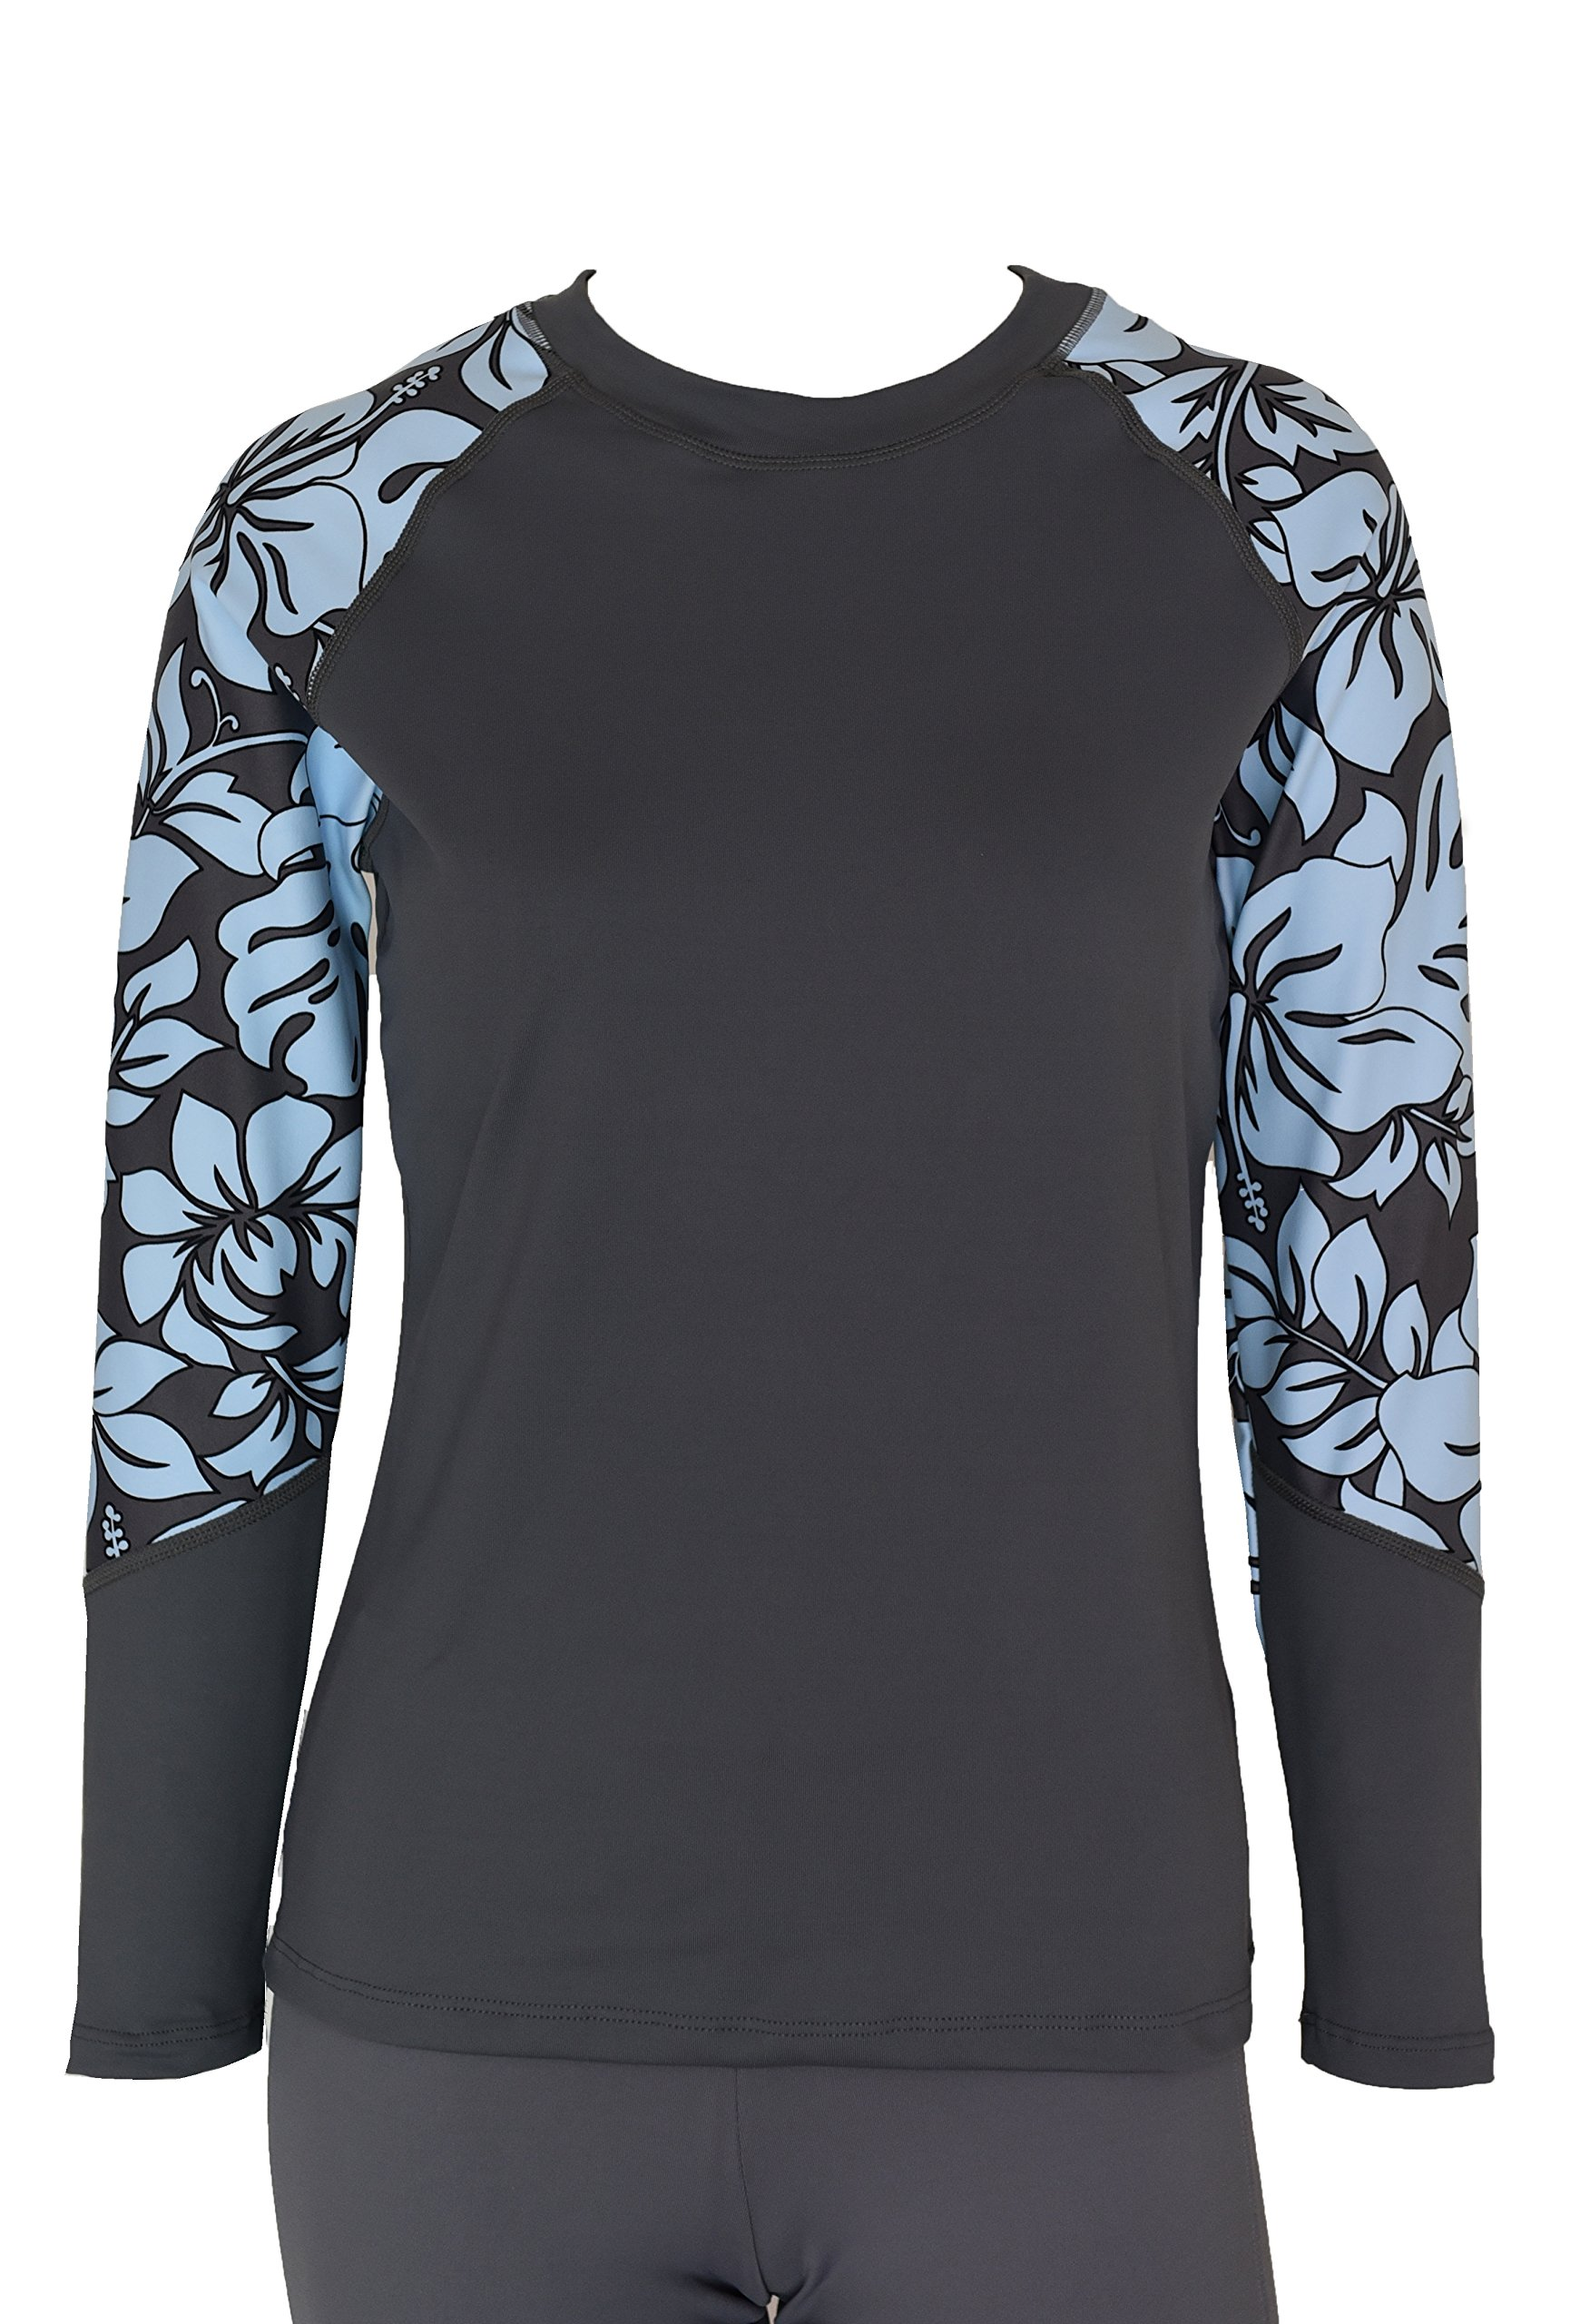 Private Island Hawaii UV Women Rash Guard Swim Yoga Active Workout Long Sleeve (L, GwB-RSRGT) by Private Island